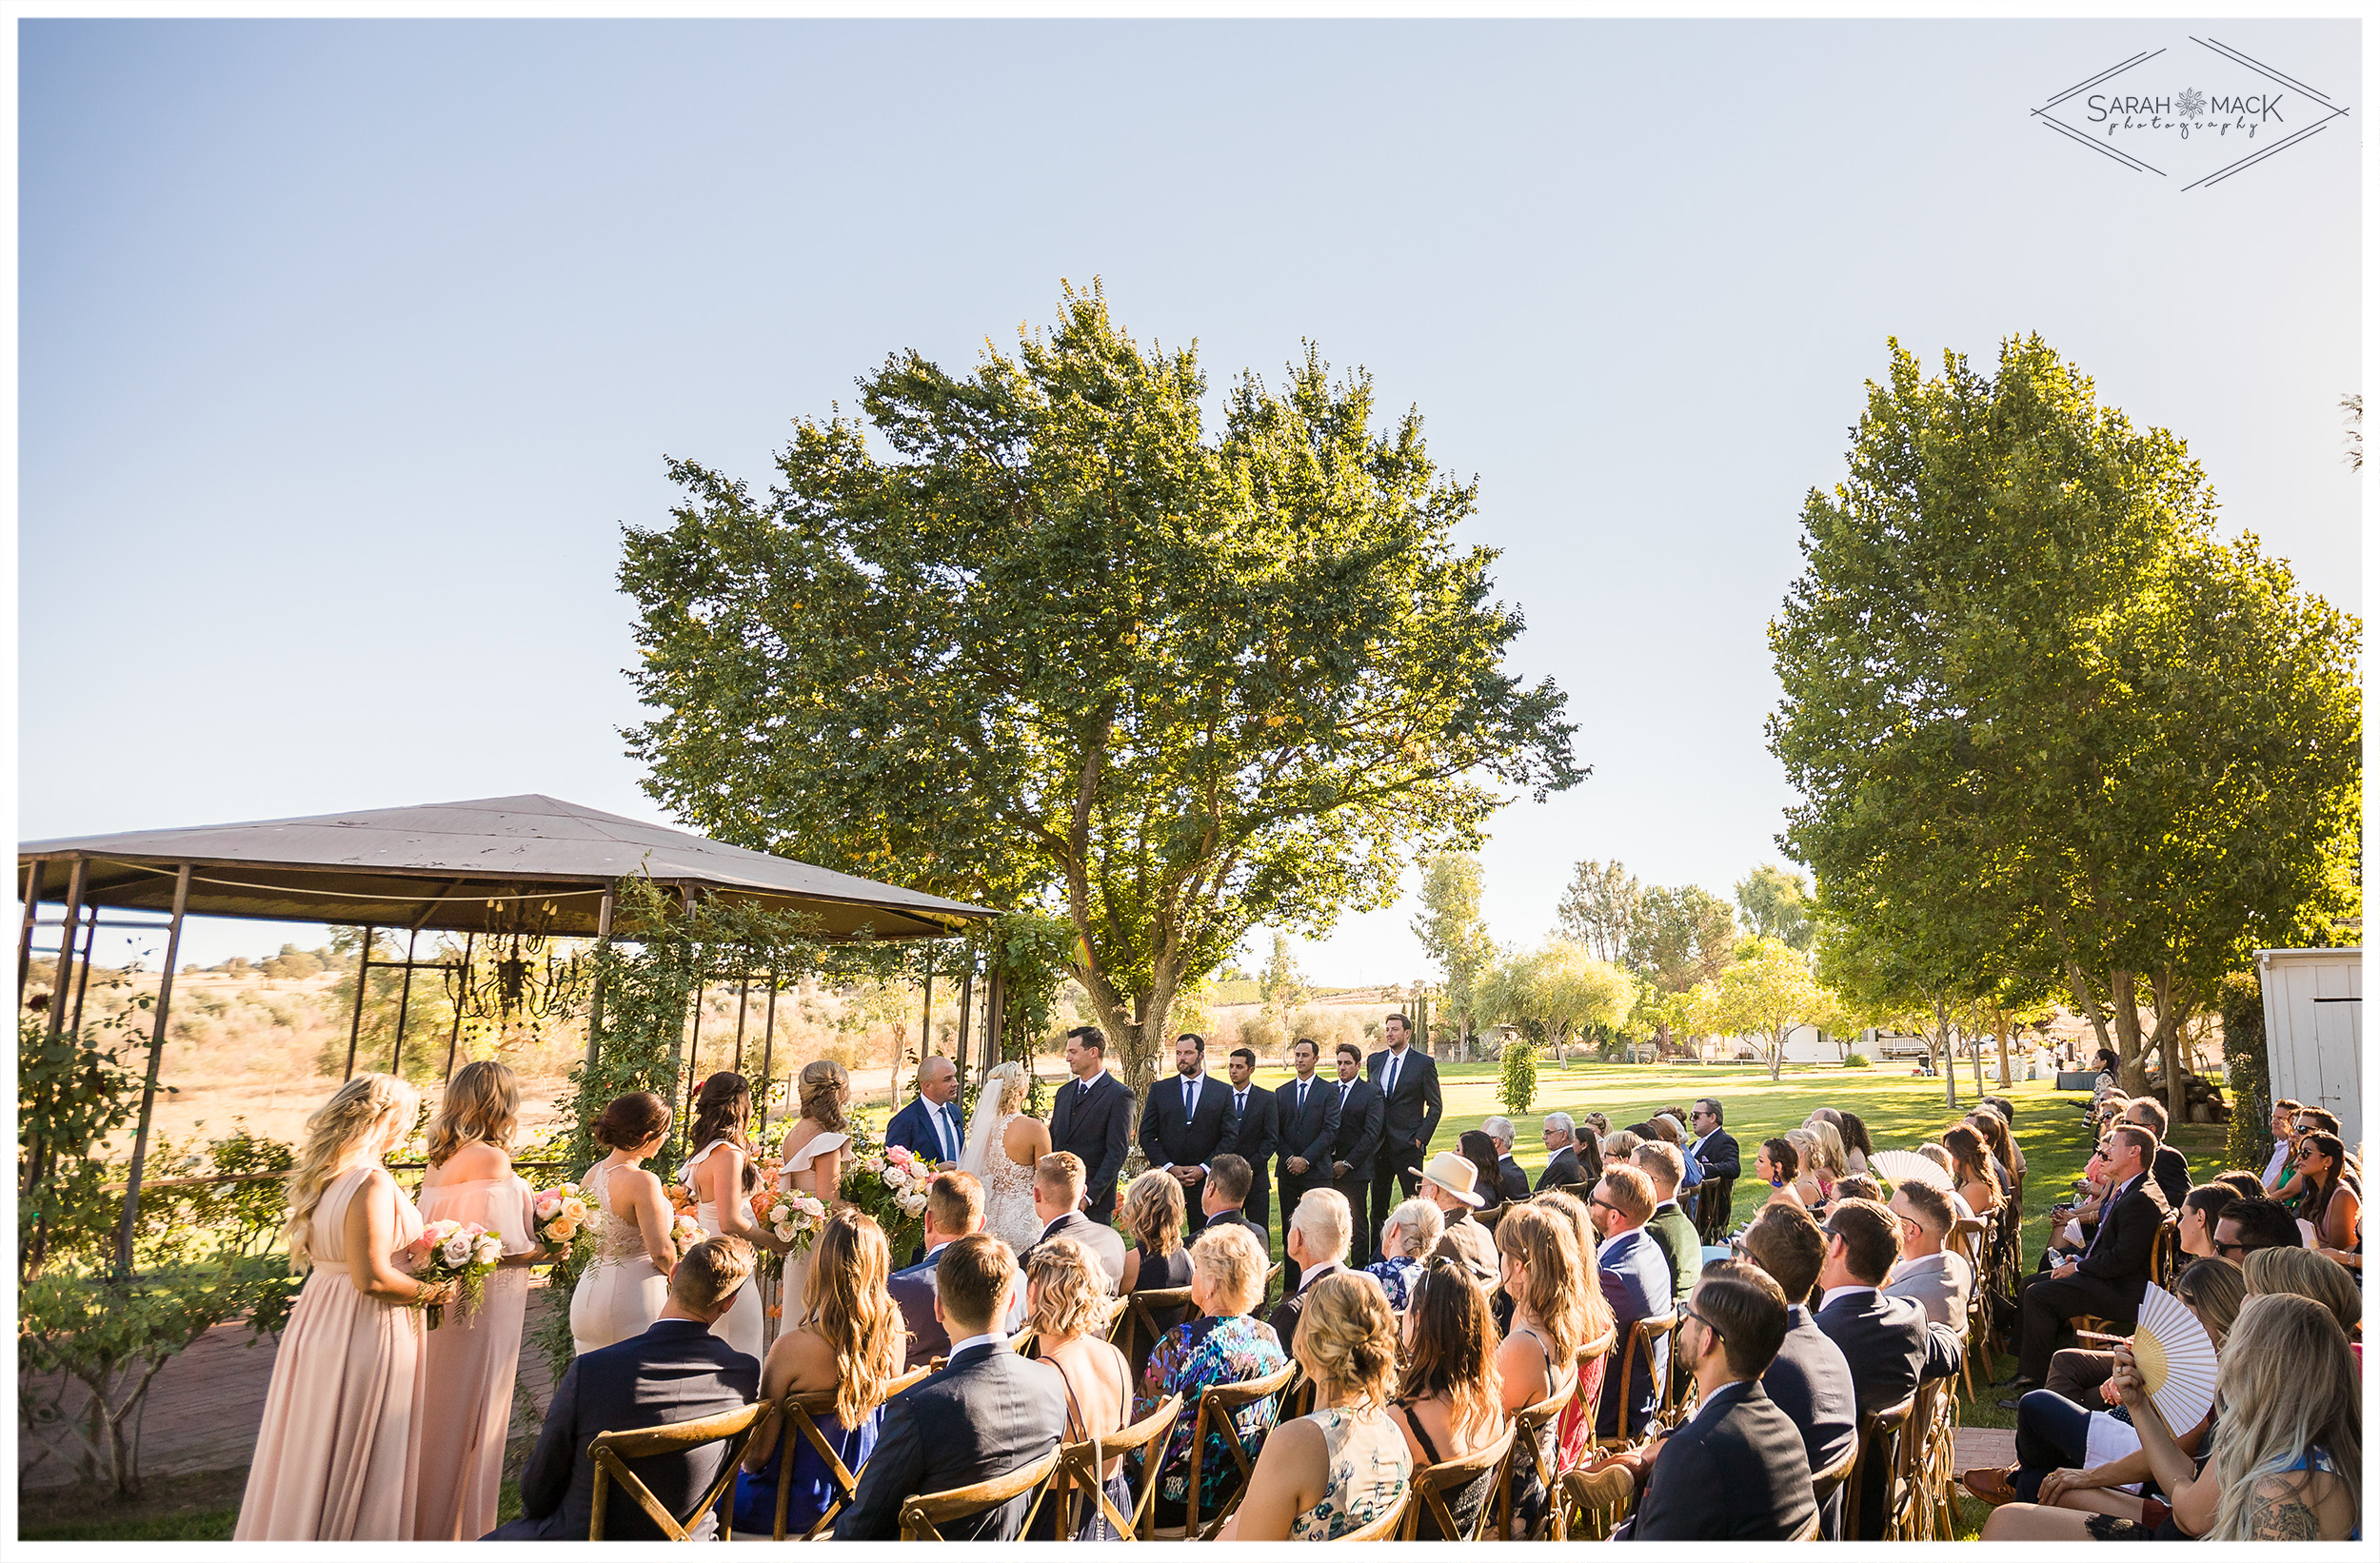 MA-Chandler-Ranch-Paso-Robles-Wedding-Photography-68.jpg